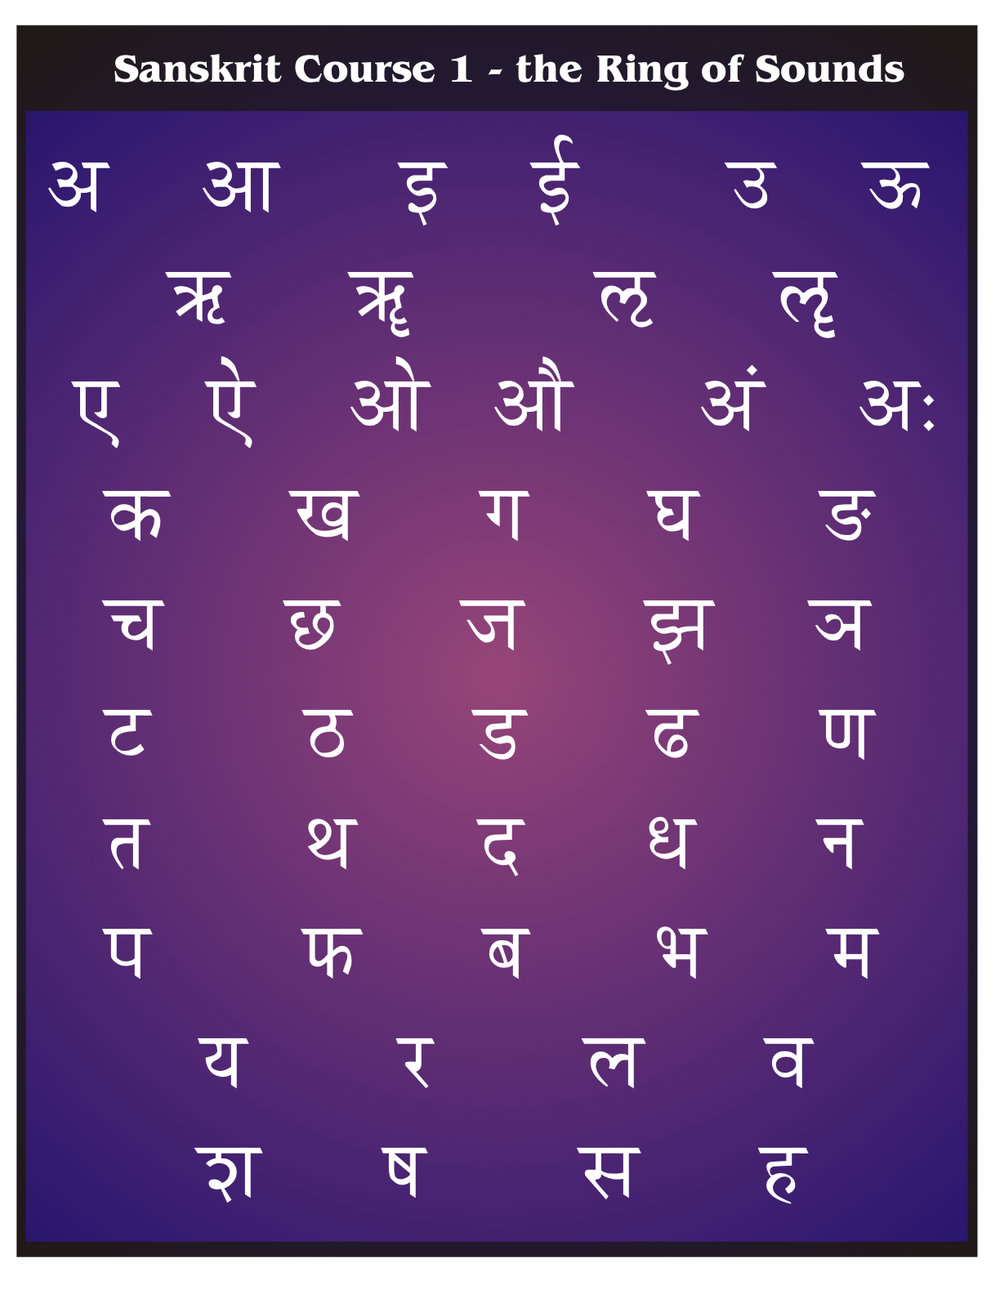 sANSKRIT IS PERFECTLY MADE